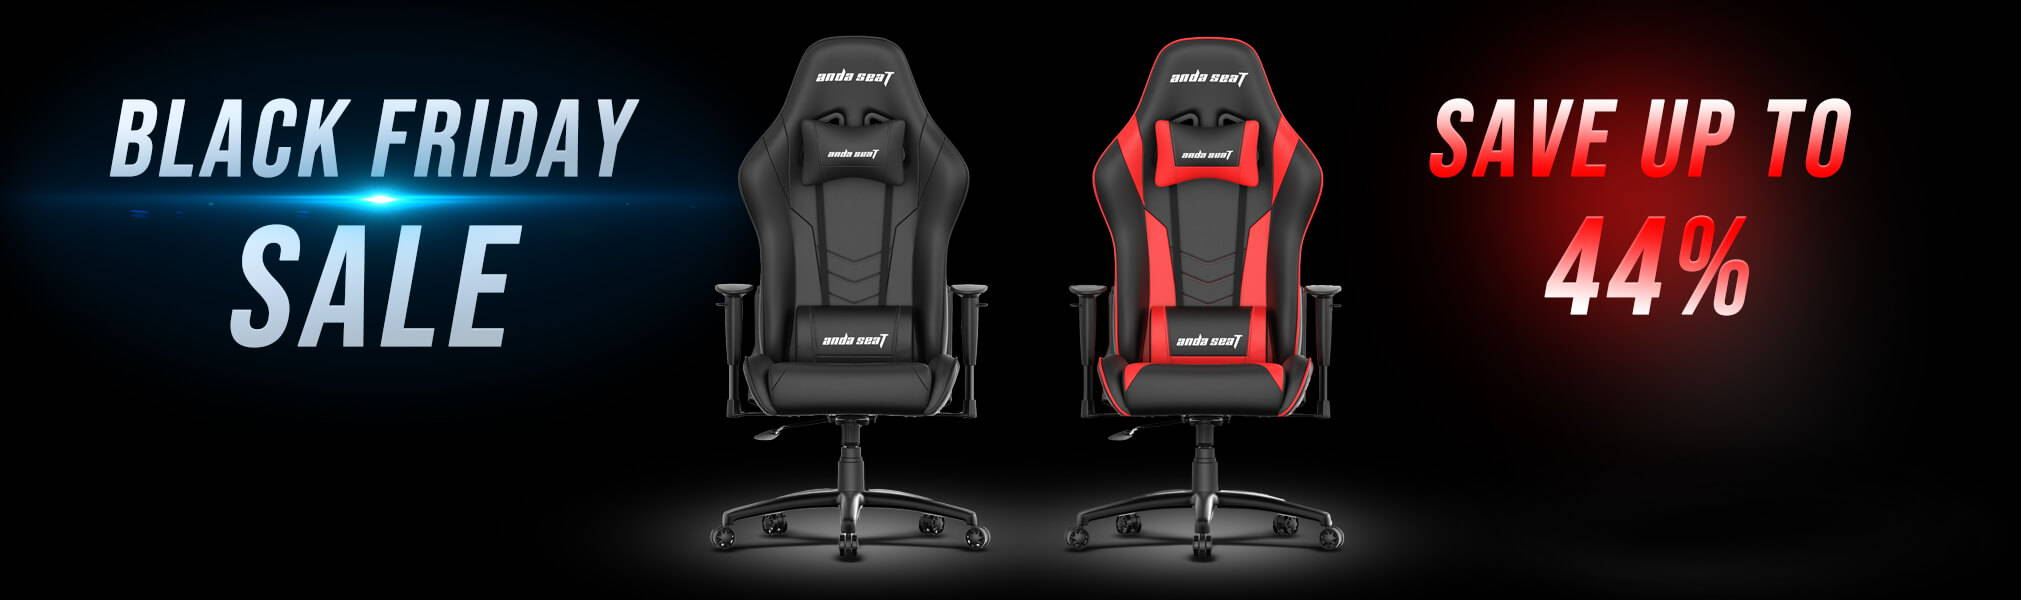 black friday gaming chair sale